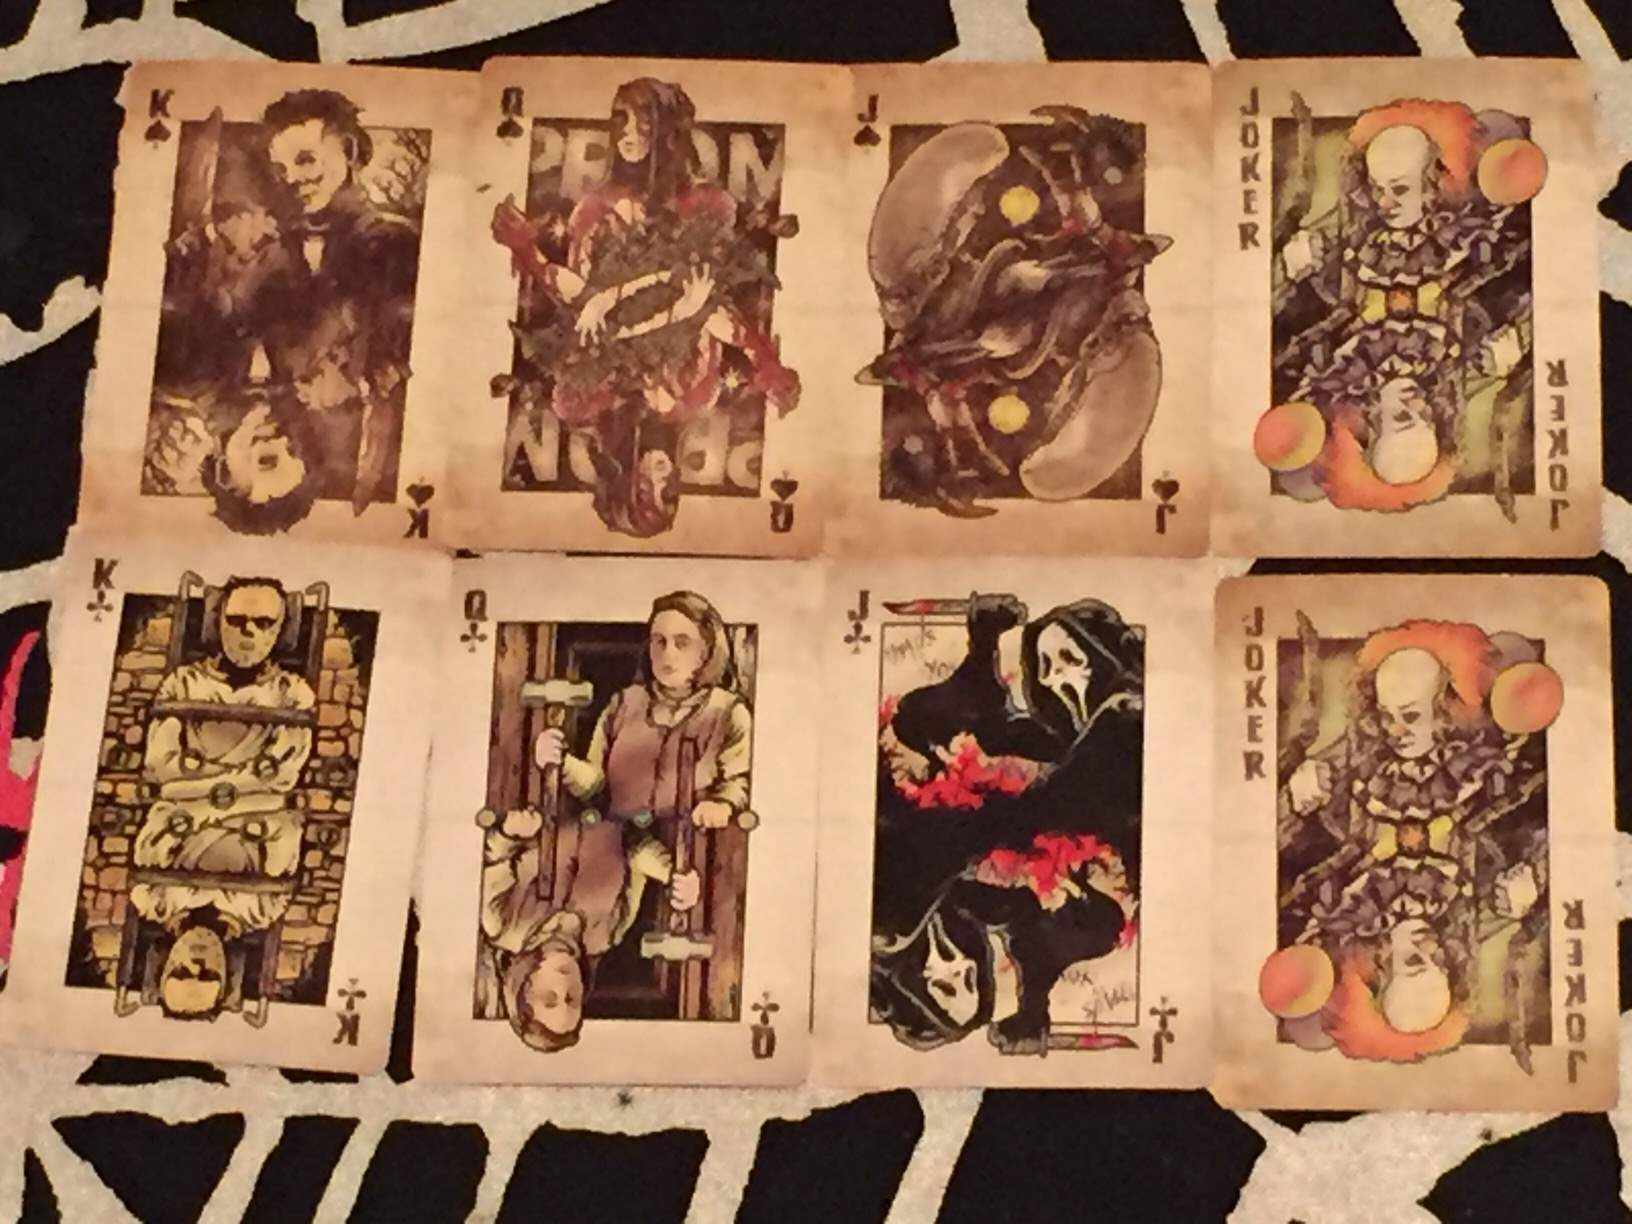 Two sets of face cards and the jokers in the deck of playing cards included in February 2016's Horror Block